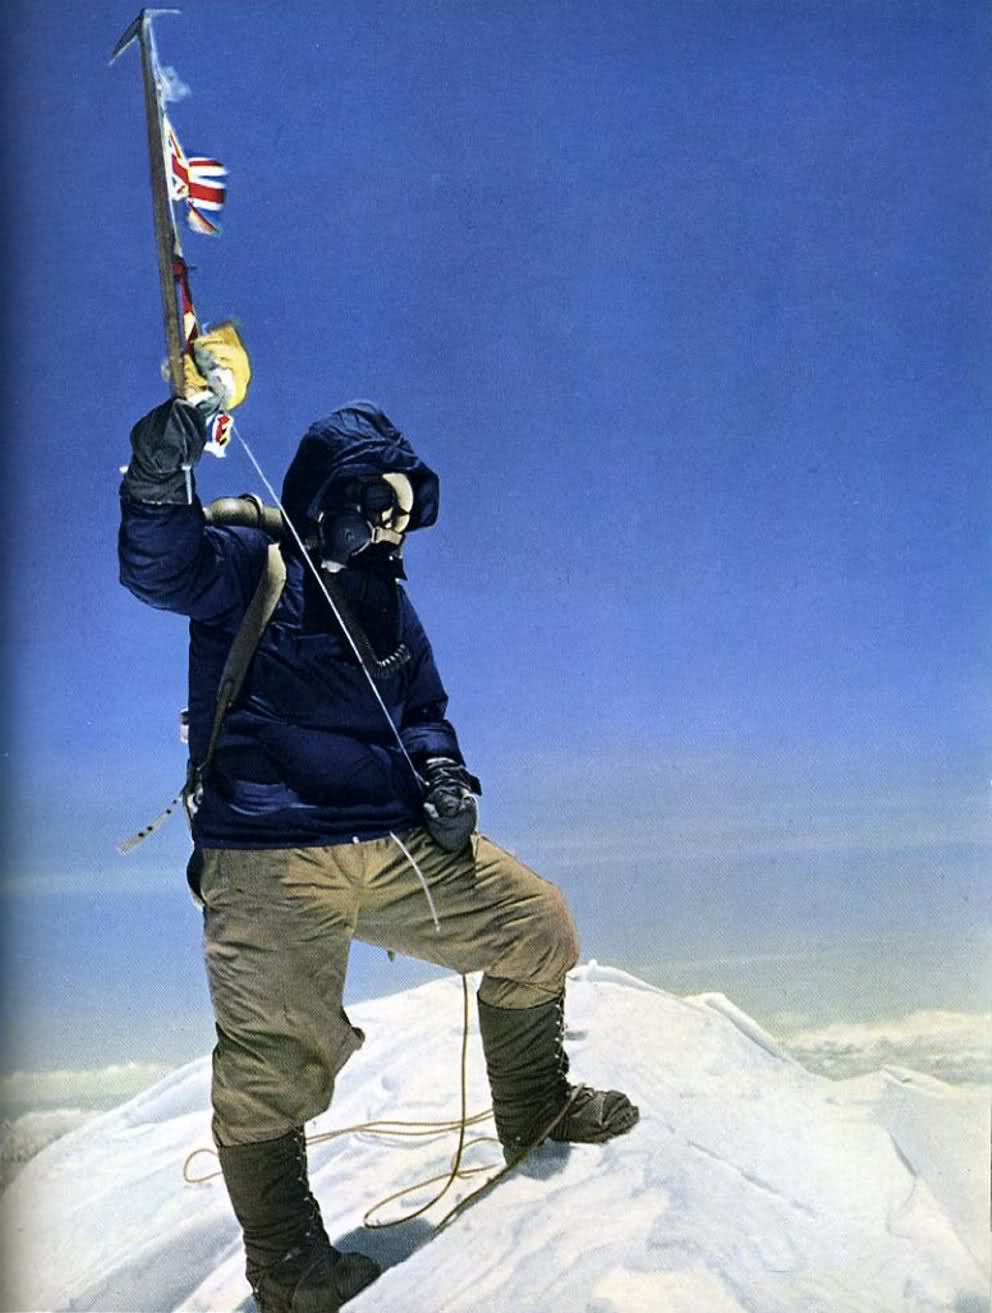 "highcrimescomic :      Tenzing Norgay at the summit of Mount Everest. May 29th, 1953. 11:30am.     ""We didn't waste any time. I started cutting steps again, seeking now rather anxiously for signs of the summit. We seemed to go on forever, tired now and moving rather slowly. In the distance I could see the barren plateau of Tibet. I looked up to the right and there was a rounded snowy dome. It must be the summit! We drew closer together as Tenzing brought in the slack on the rope. I continued cutting a line of steps upward. Next moment I had moved onto a flattish exposed area of snow with nothing but space in every direction. Tenzing quickly joined me and we looked around in wonder. To our immense satisfaction, we realized we had reached the top of the world!    ""It was 11:30 a.m. on 29th May 1953. In typical Anglo-Saxon fashion, I stretched out my arm for a handshake, but this was not enough for Tenzing who threw his arms around my shoulders in a mighty hug and I hugged him back in return. With a feeling of mild surprise, I realized that Tenzing was perhaps more excited at our success than I was.""   -VIEW FROM THE SUMMIT, Sir Edmund Hillary     60 years ago right about now, a beekeeper from New Zealand and a Nepalese sherpa were just about done with their 15 minutes of high-fiving and feeling like the literal kings of fuck mountain.    And 60 years later, I get to write a comic because of it. Everything makes a weird sort of sense, because it makes no sense at all."